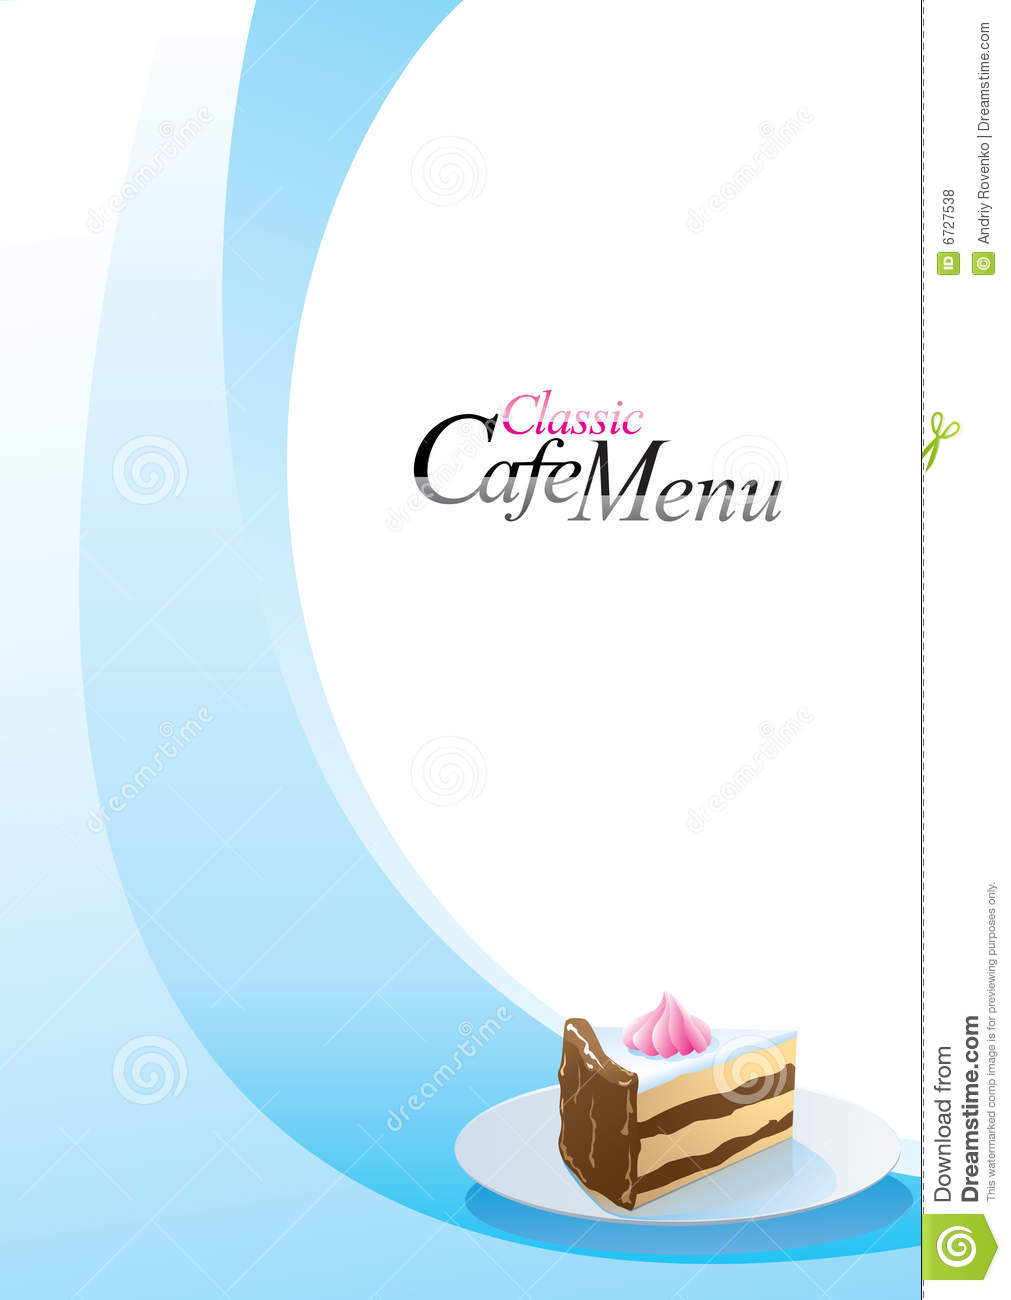 Dessert Menu Template Royalty Free Stock Photos - Image: 6727538